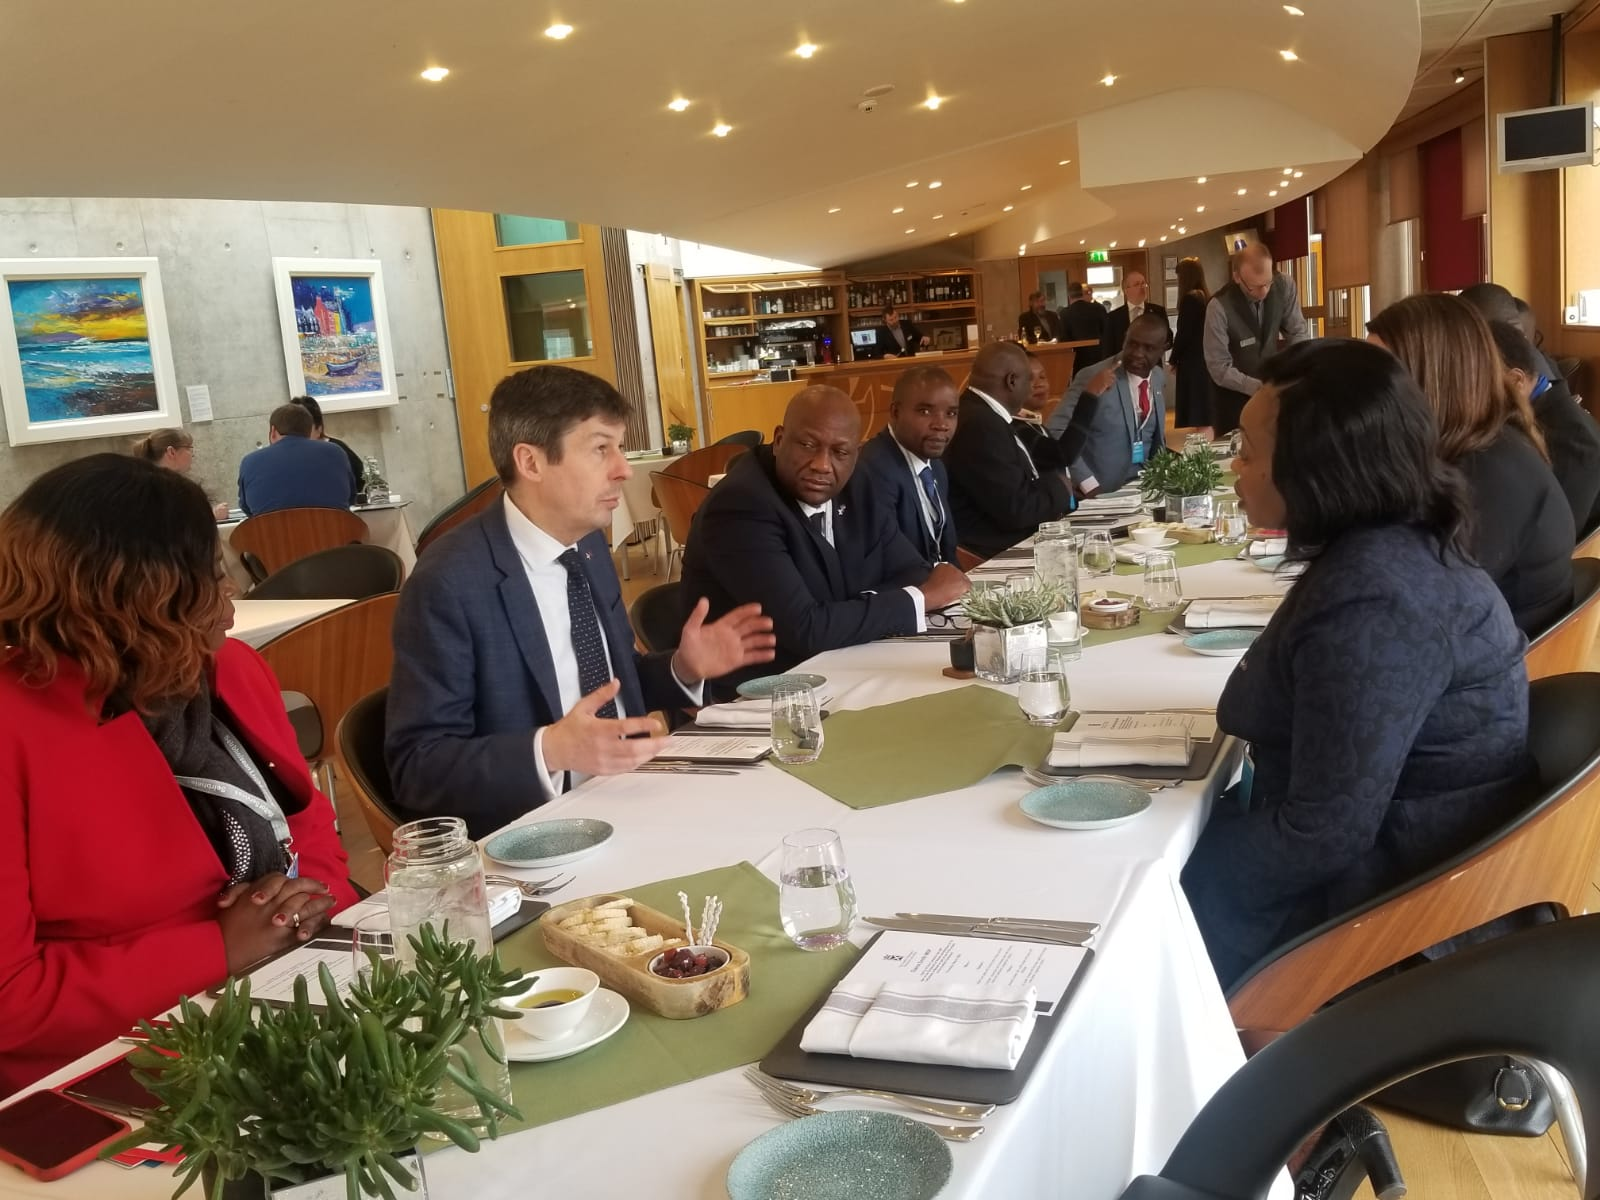 Delegates joined the Speaker of Malawi, Catherine Gotani Hara and Ken Macintosh, Presiding Officer of the Scottish Parliament for a working lunch